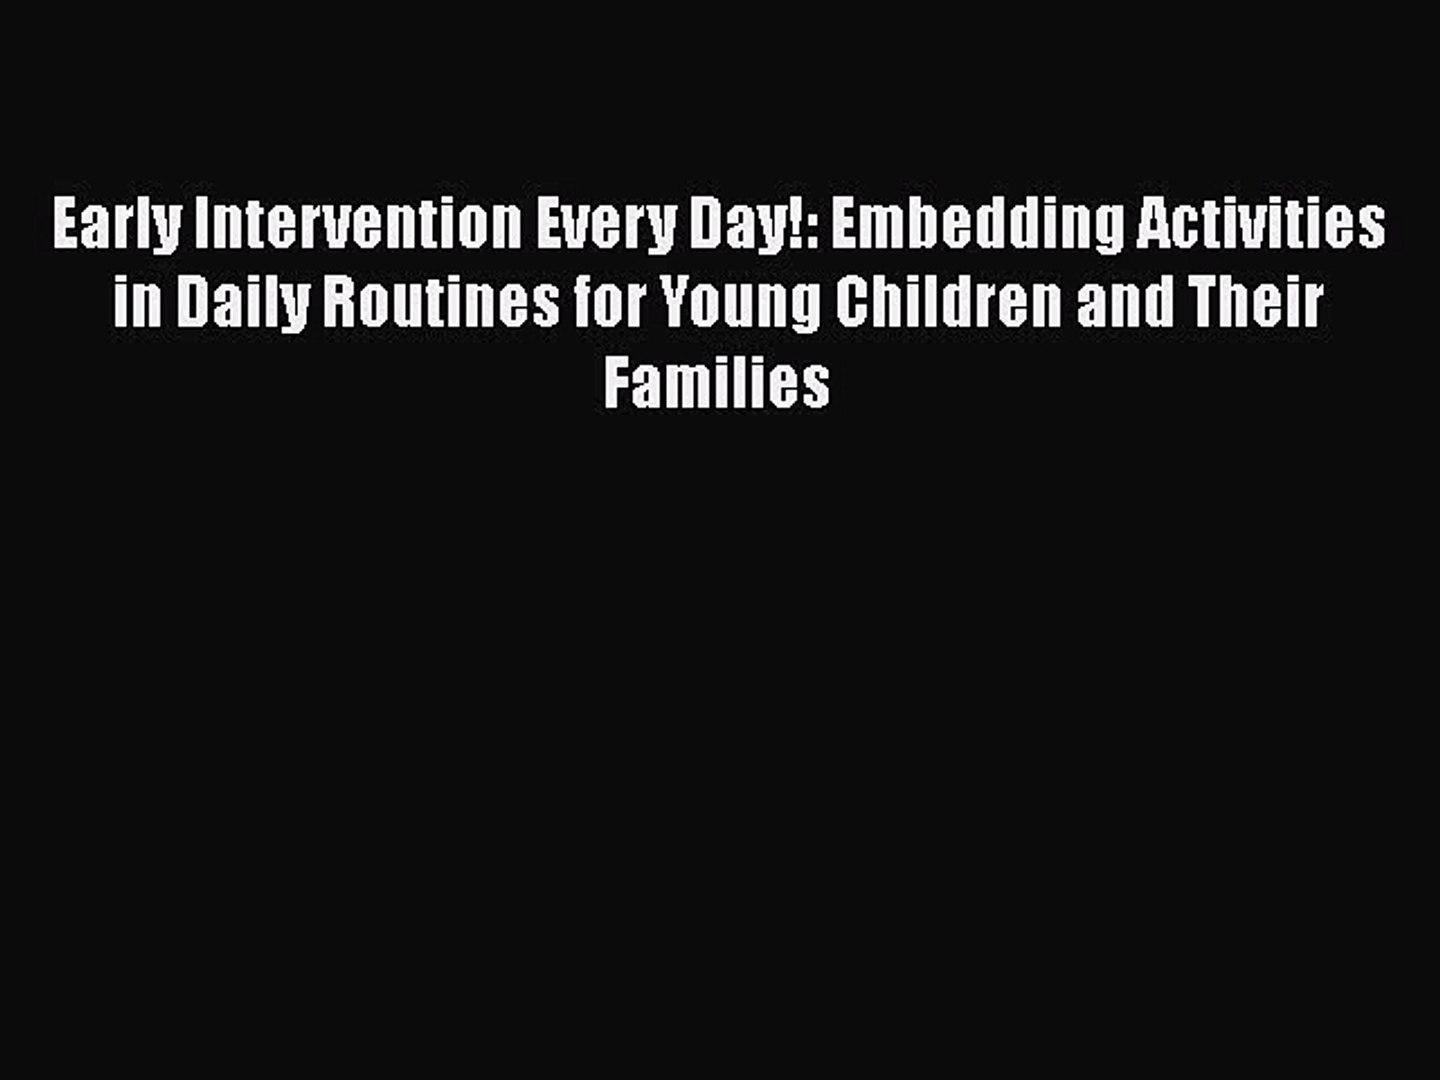 Download Early Intervention Every Day!: Embedding Activities in Daily Routines for Young Children